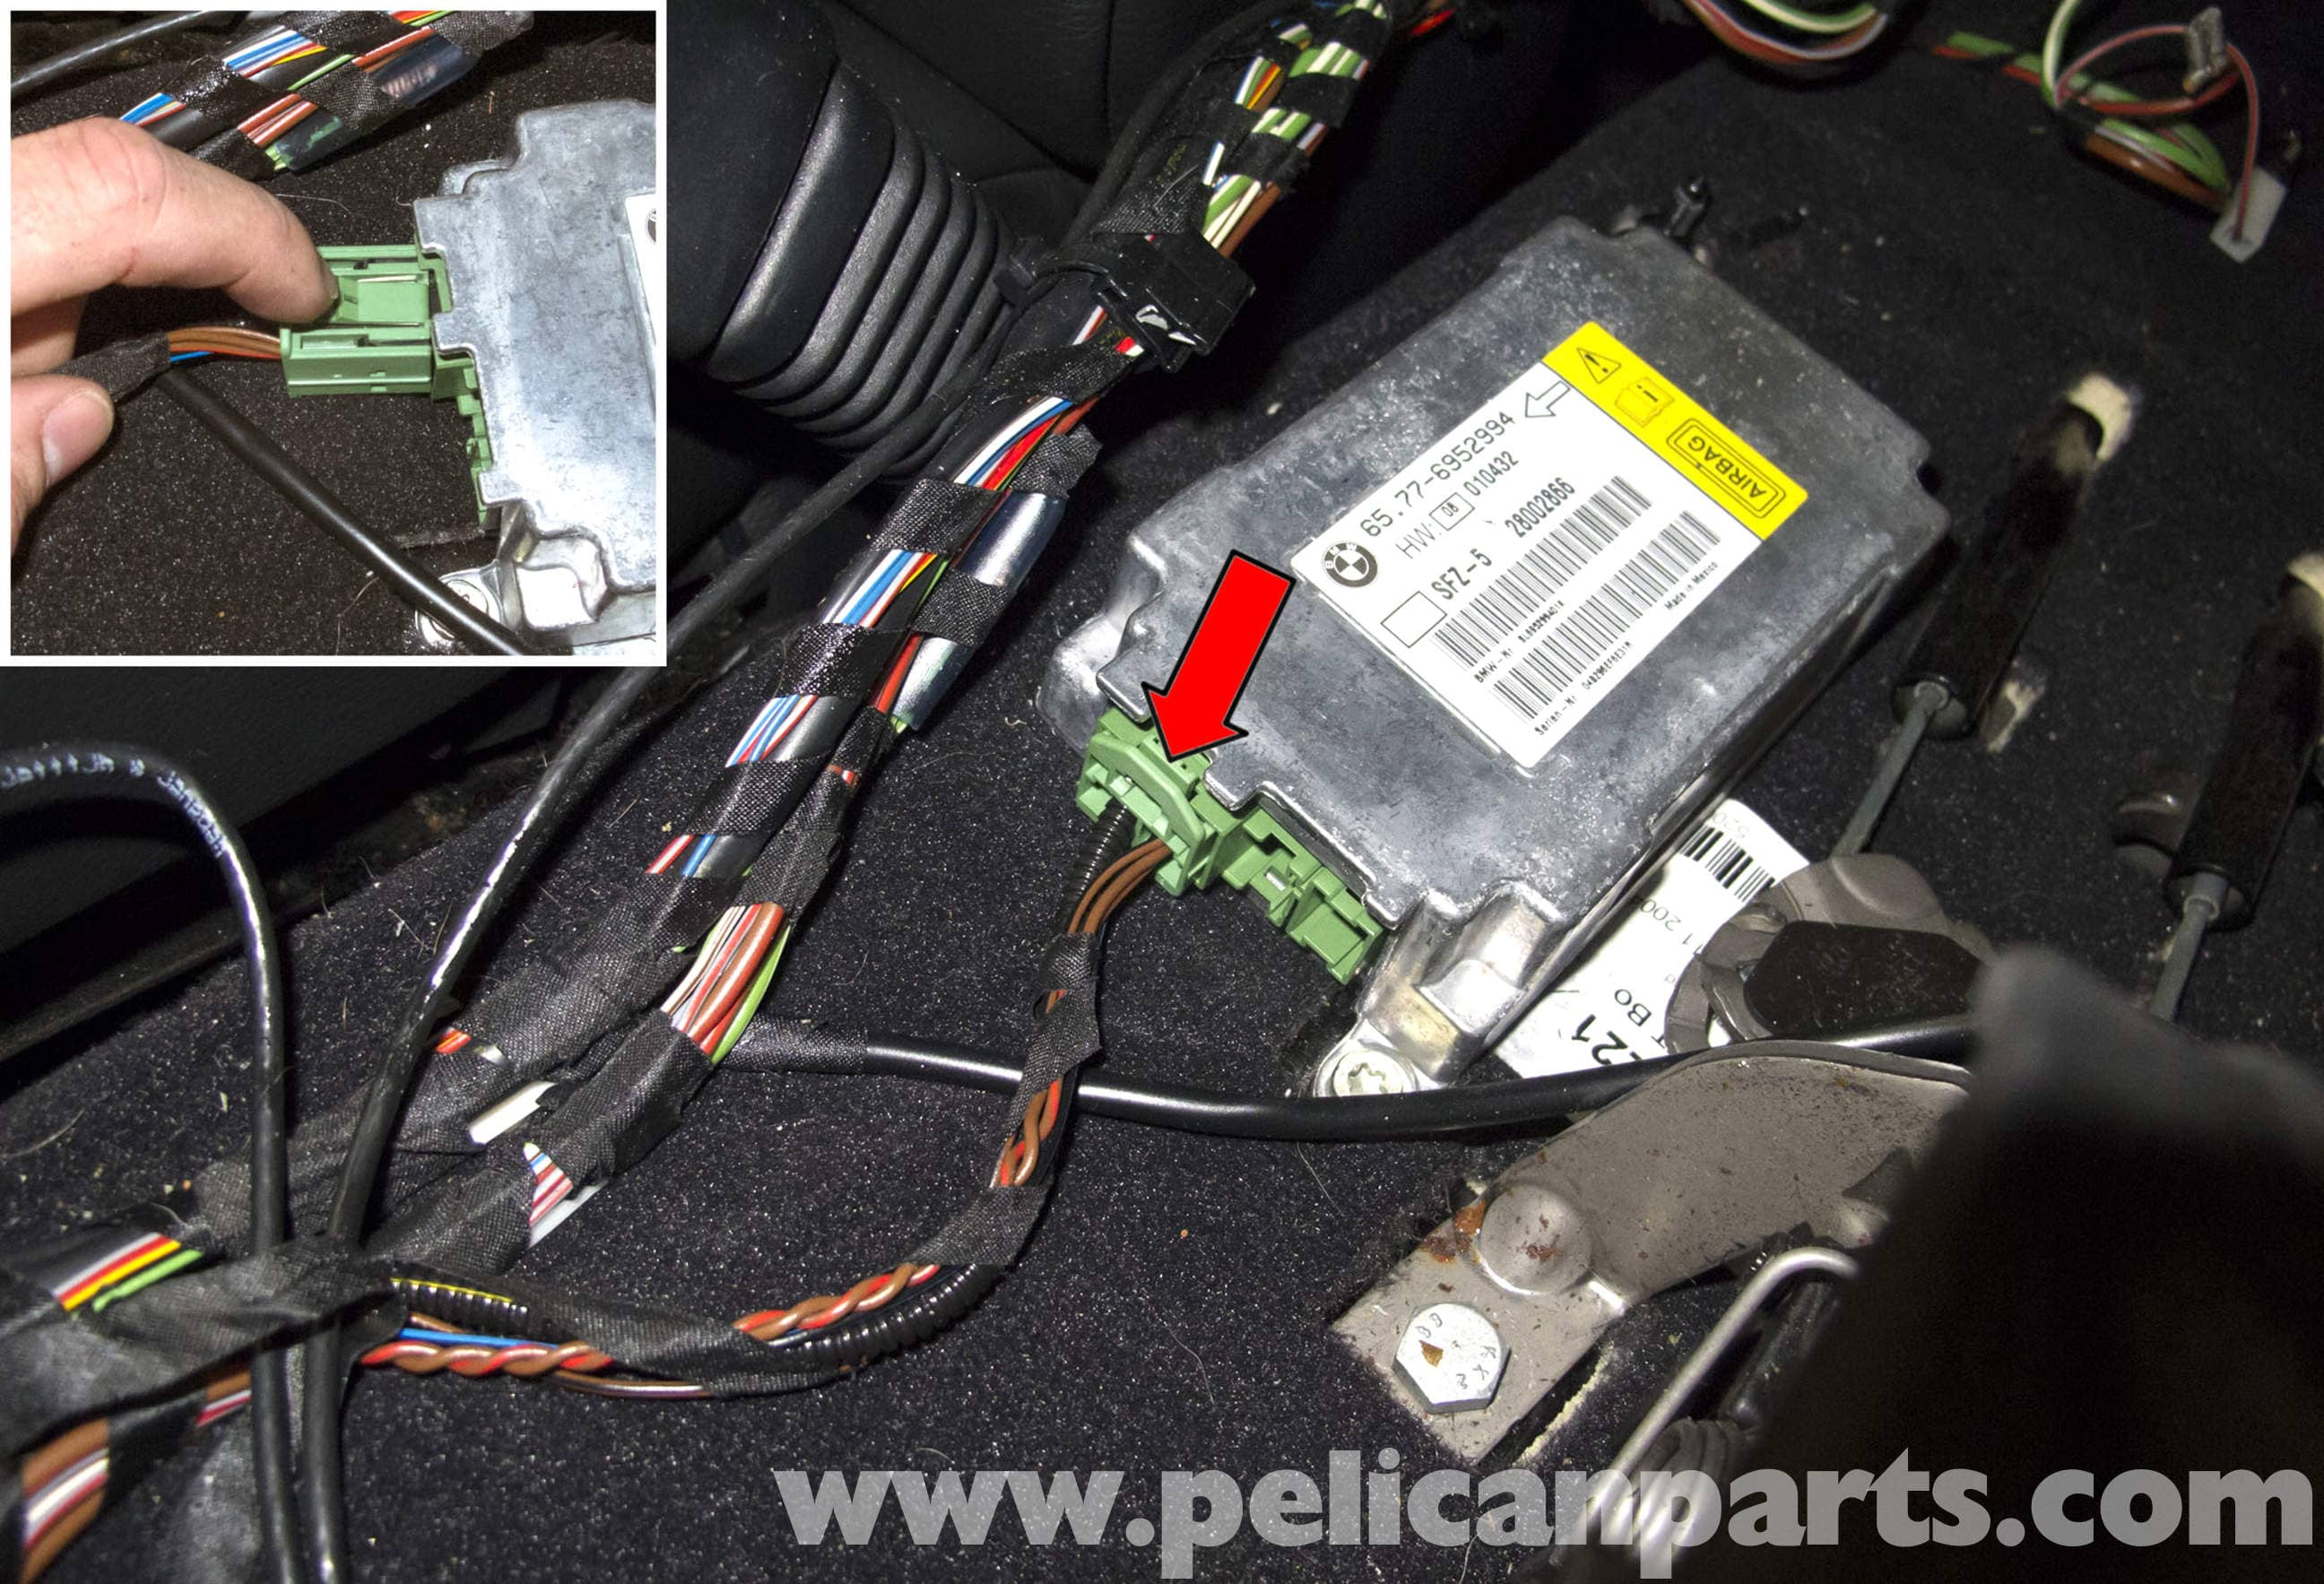 bmw e38 wiring diagram mitsubishi eclipse stereo e60 5-series airbag module, blue tooth antenna and idrive controller replacement - pelican ...